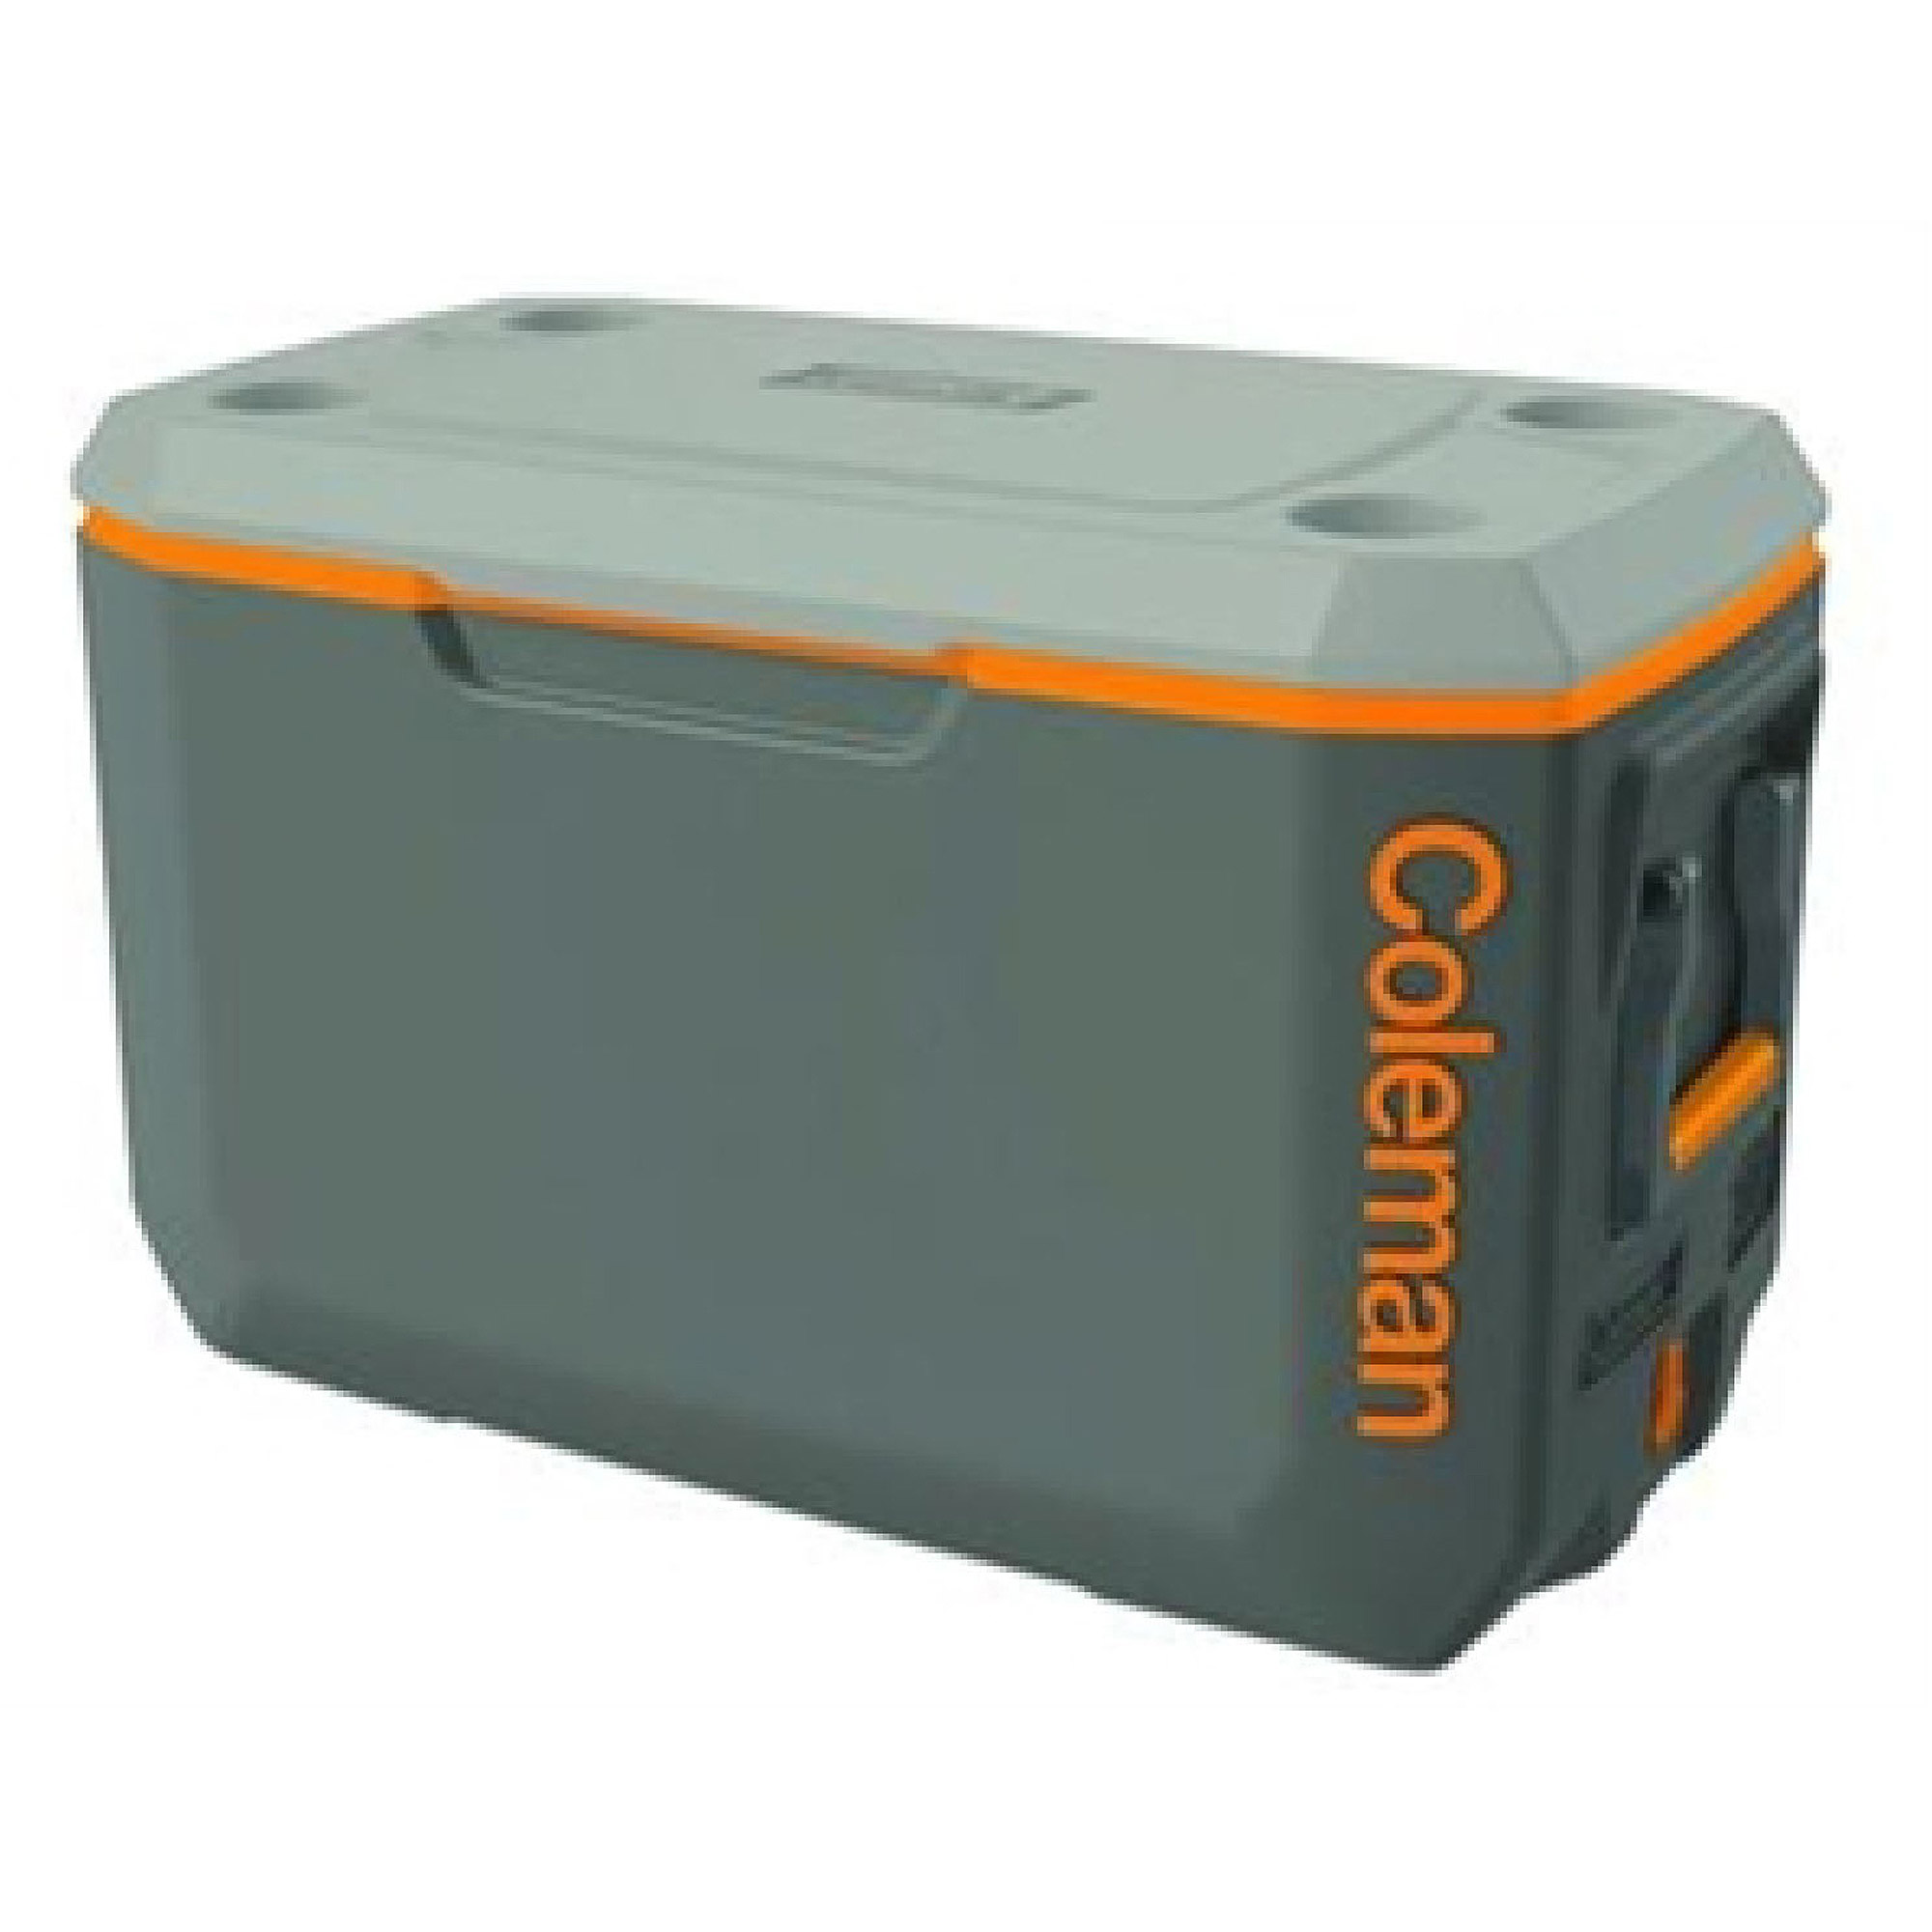 Coleman 70 Qrt Xtreme Dark Gry Orng Lt Gry Cooler by COLEMAN